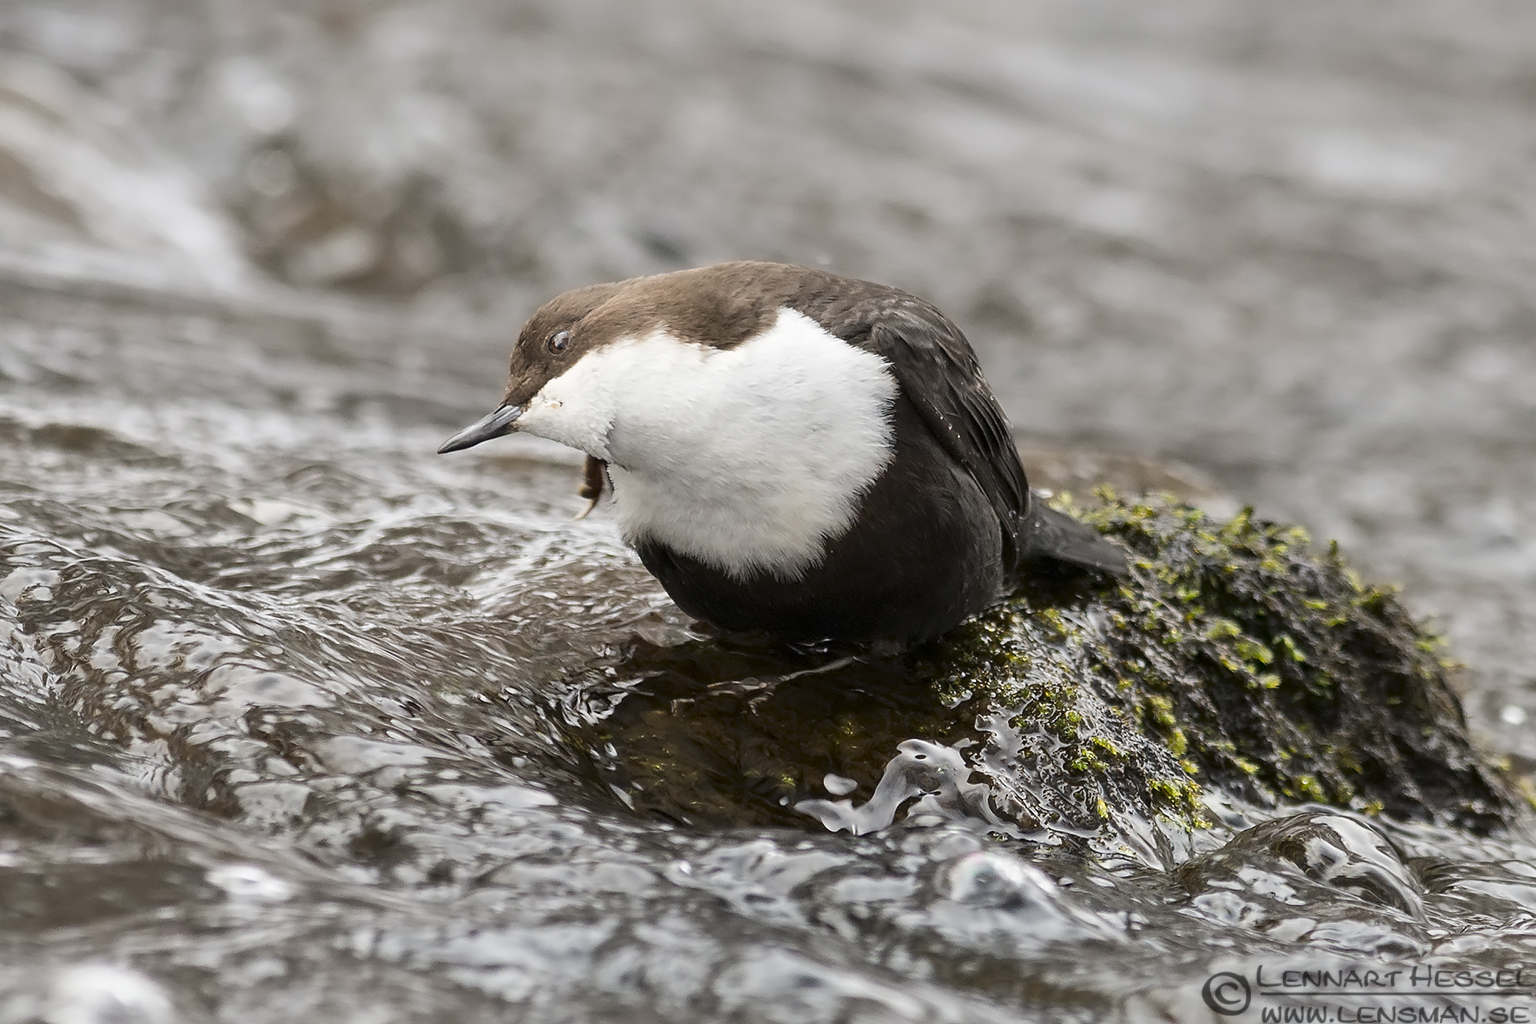 White-throated Dipper scratching, Jonsered